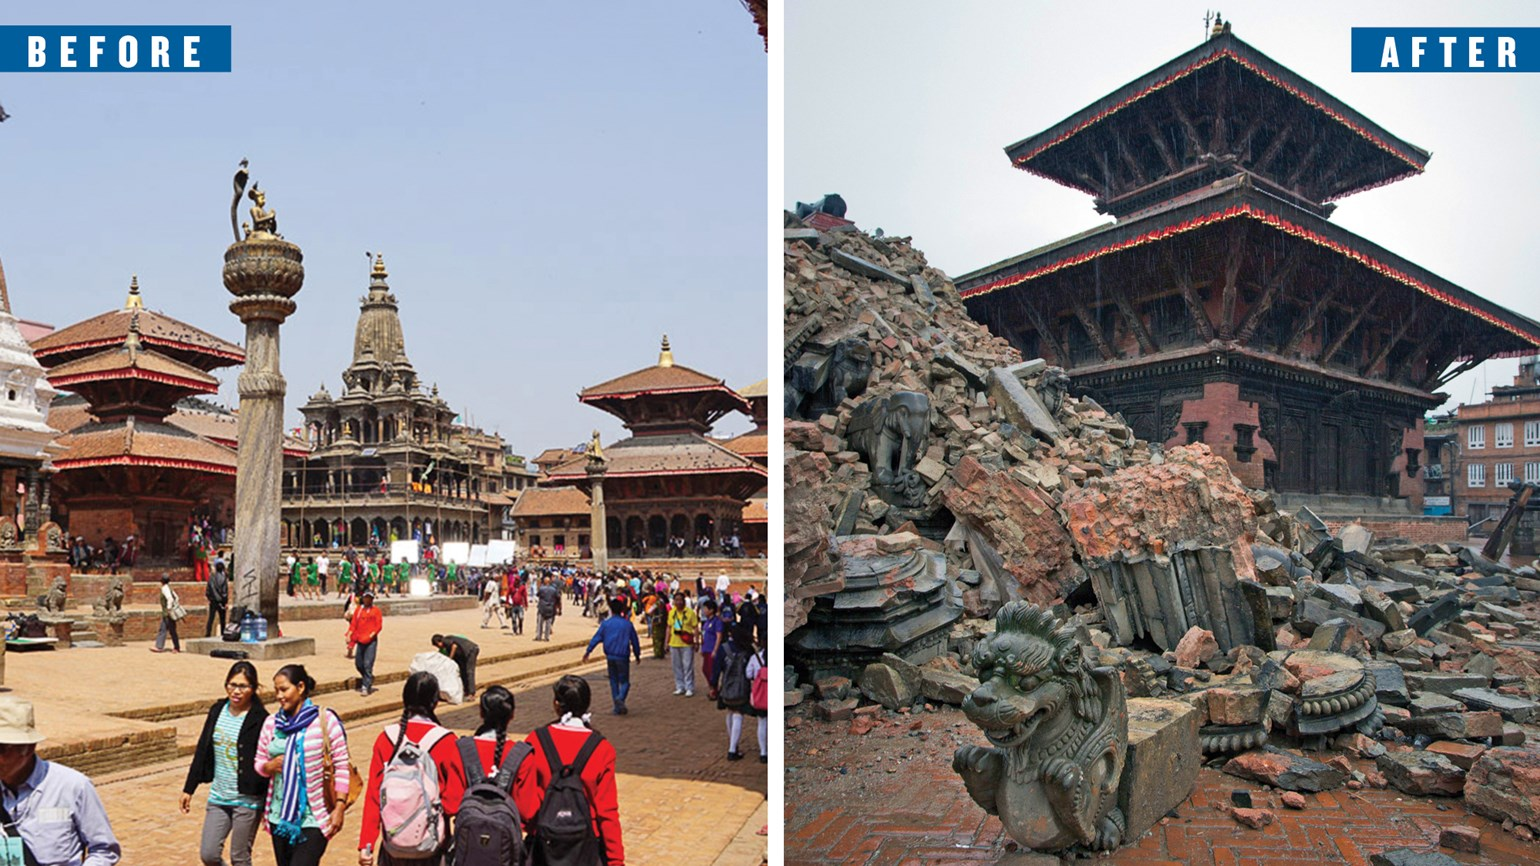 Nepal's tourism will be key to its recovery